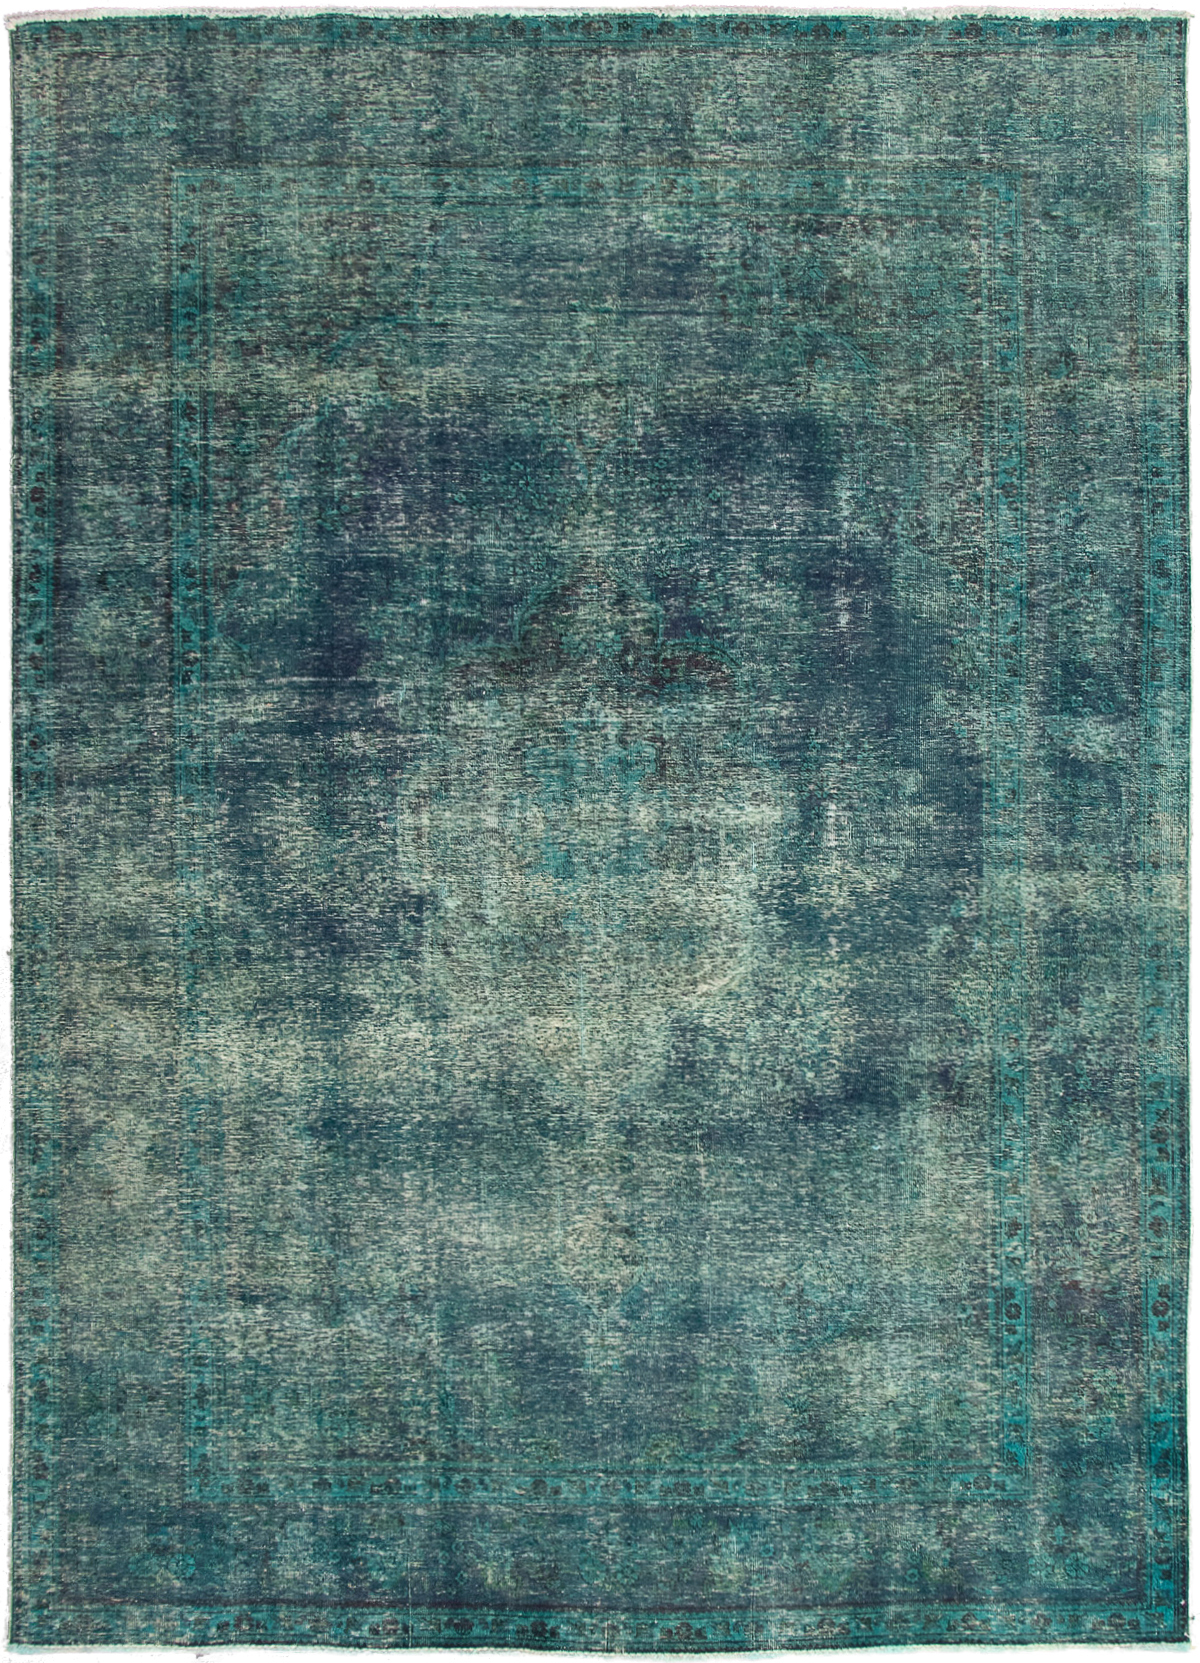 """Hand-knotted Color Transition Dark Blue, Teal Wool Rug 8'3"""" x 11'6"""" Size: 8'3"""" x 11'6"""""""